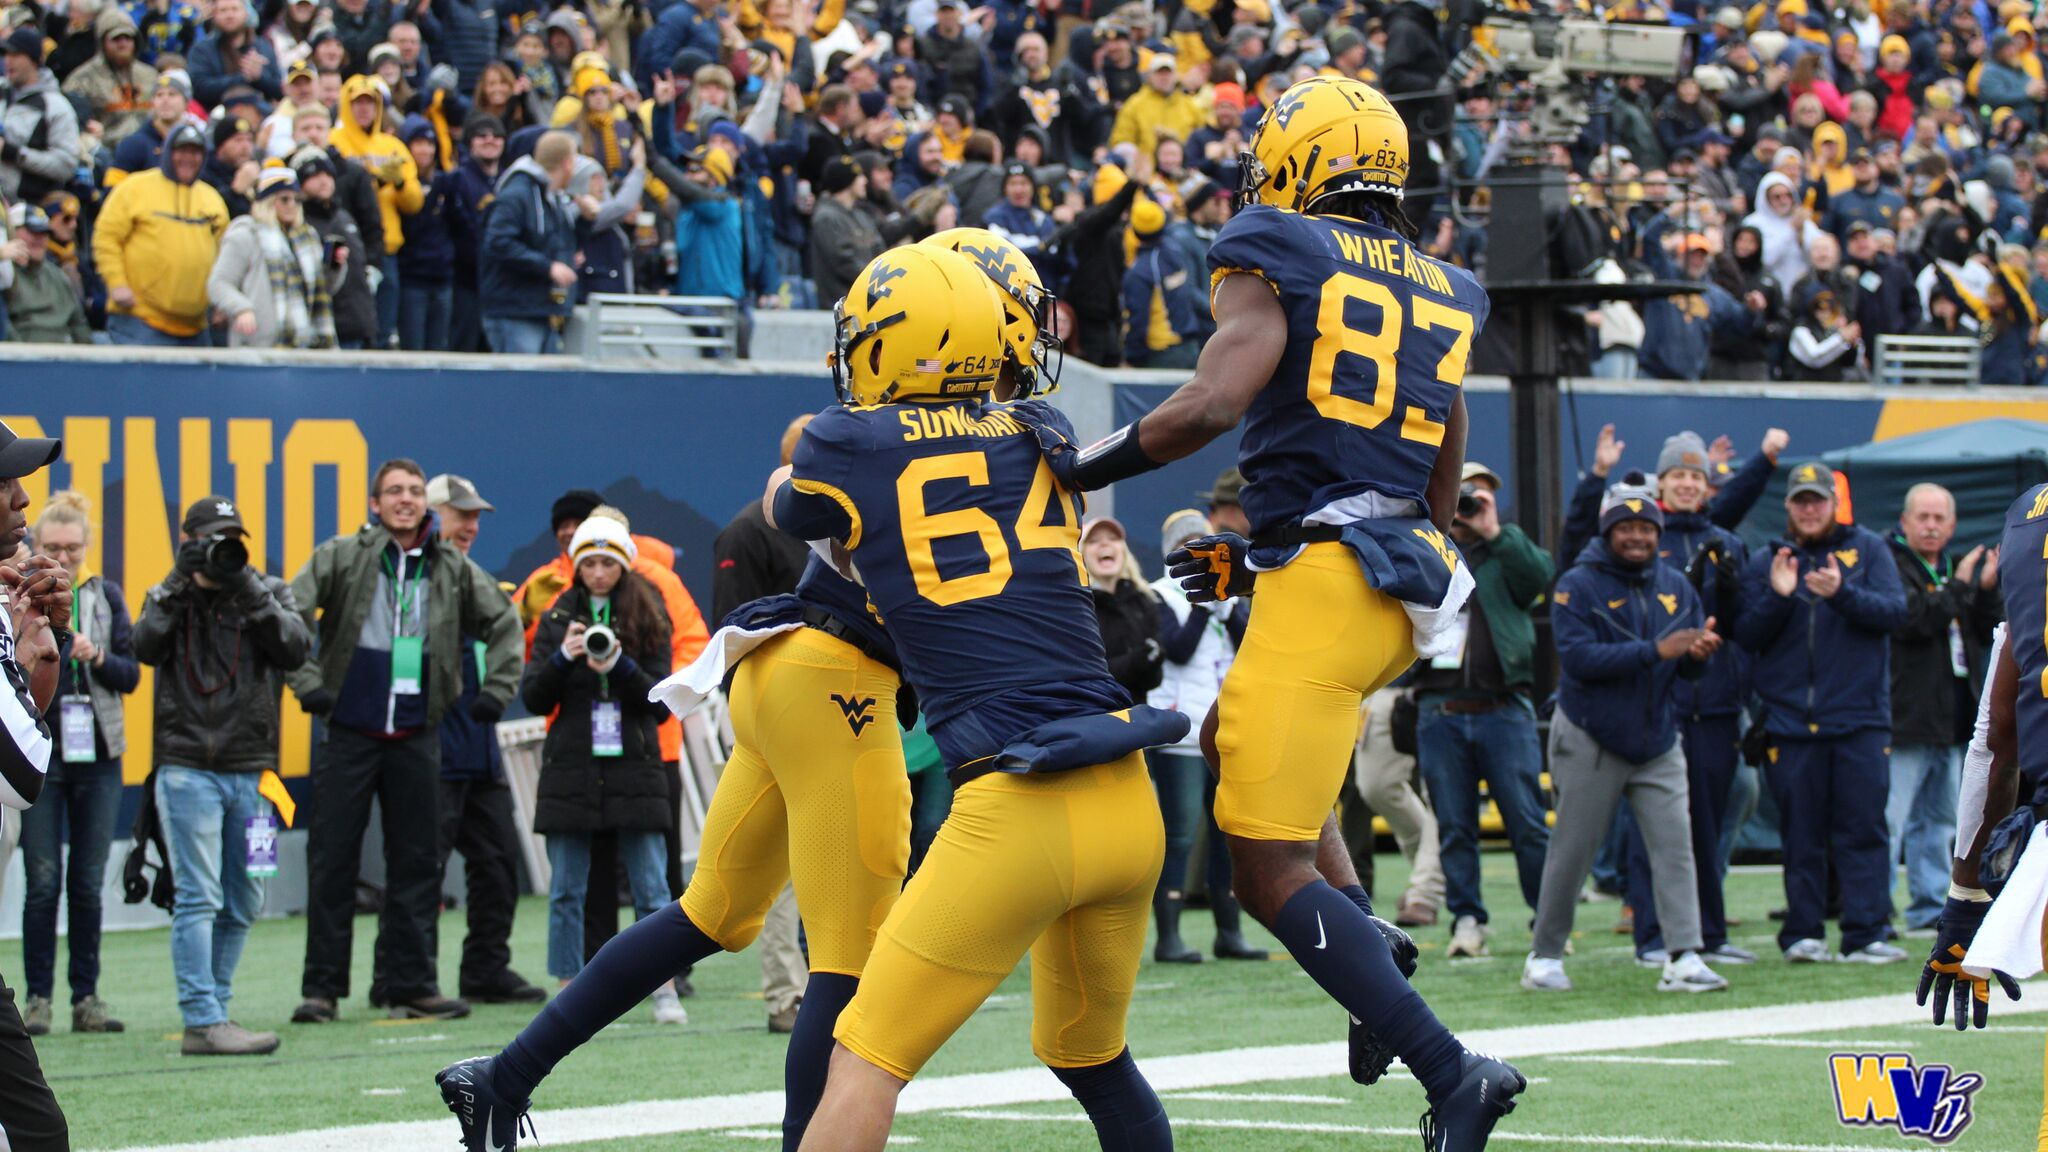 West Virginia Looking To Send Seniors Off With Win Vs Tcu